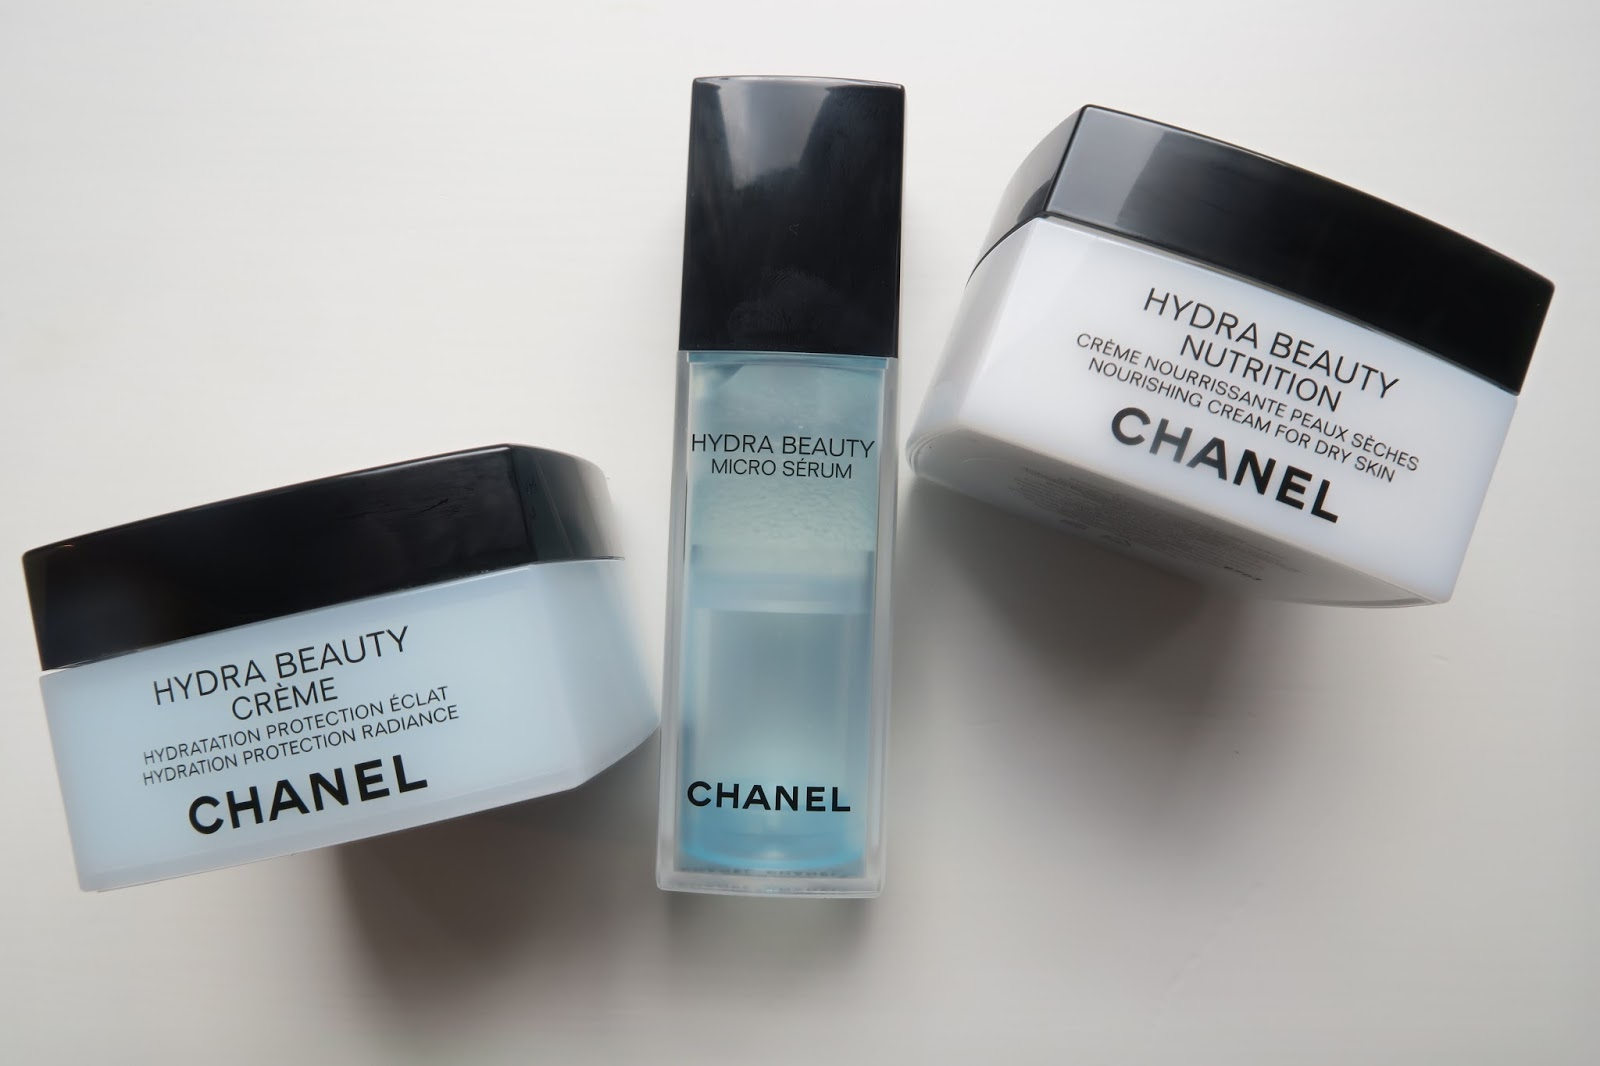 Dehydration week - Chanel Hydra Beauty Range - Caroline Hirons